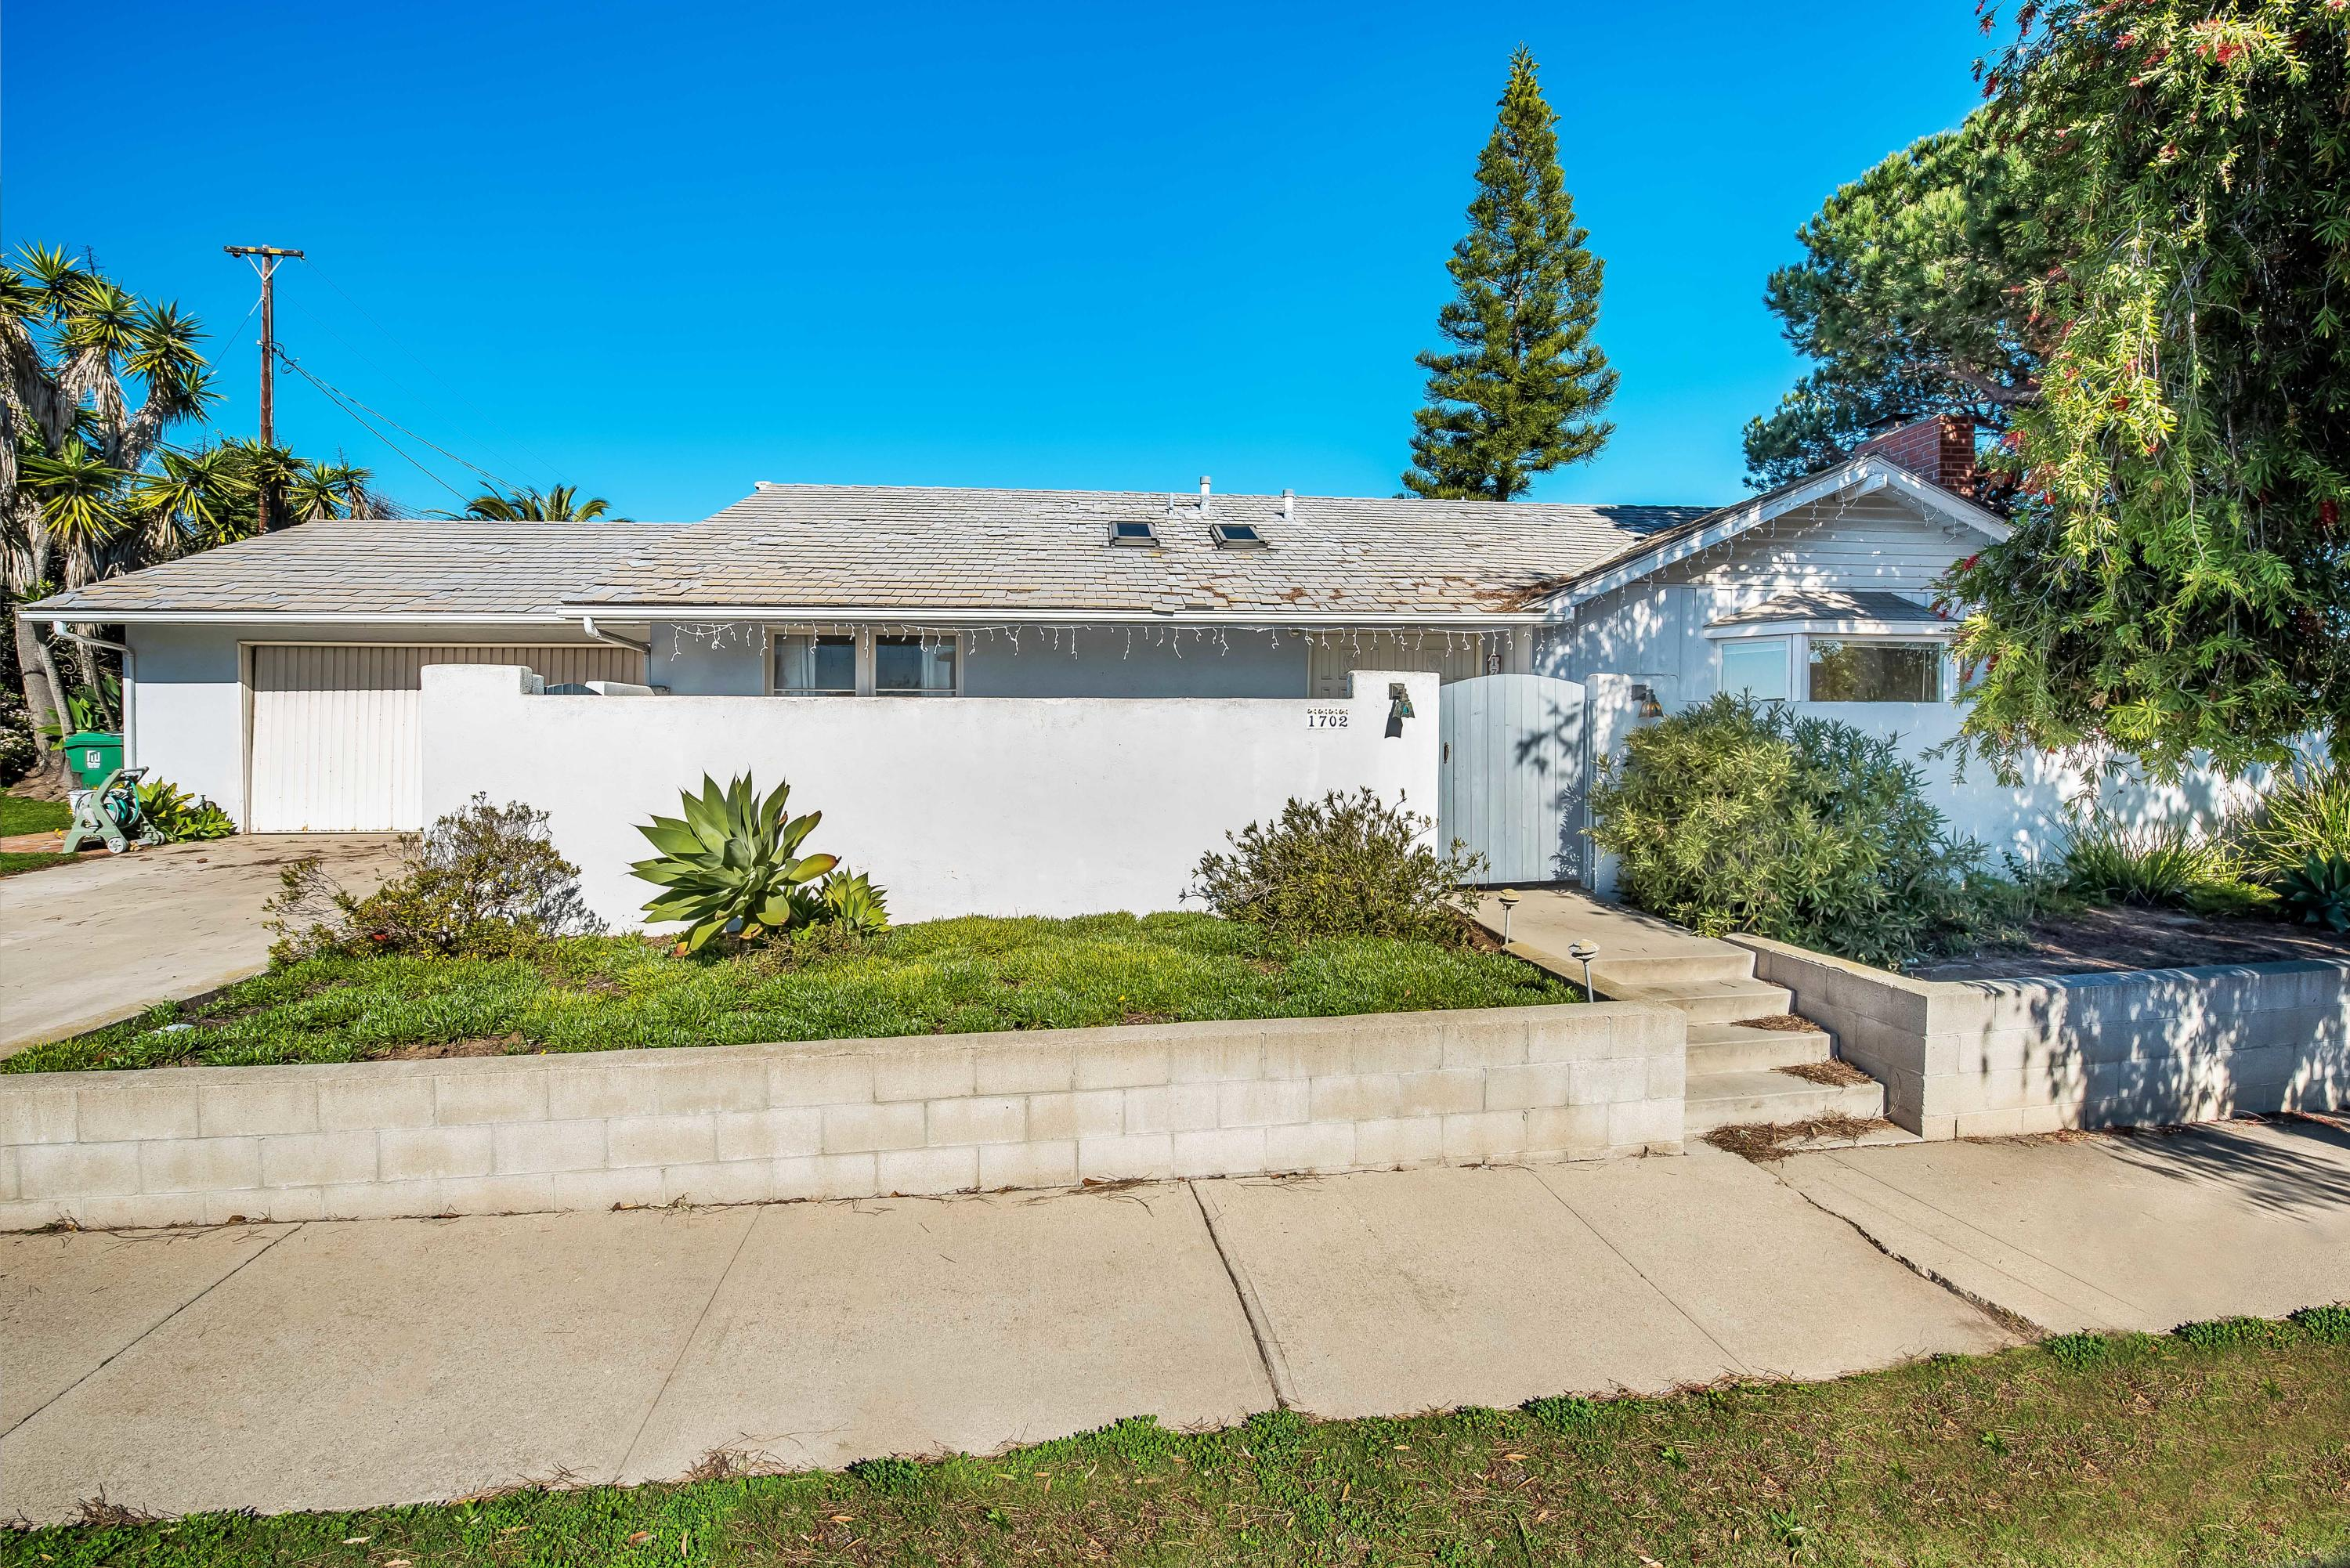 Property photo for 1702 Shoreline Dr Santa Barbara, California 93109 - 19-211